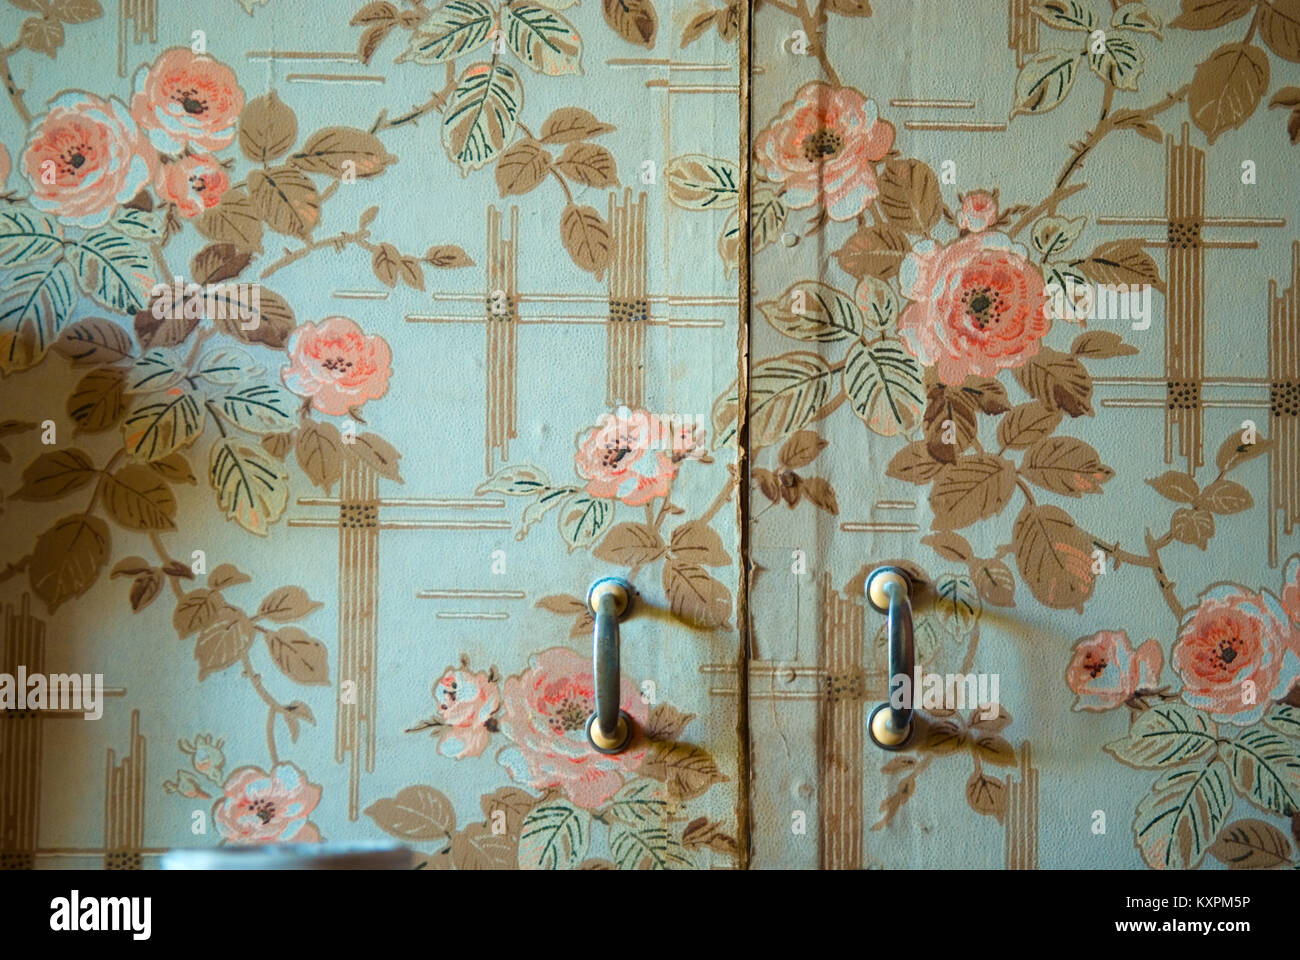 Pink patterned wallpaper and flowers stock photos pink patterned close up of wardrobe doorl with old wallpaper from 1920s in a house in southern france mightylinksfo